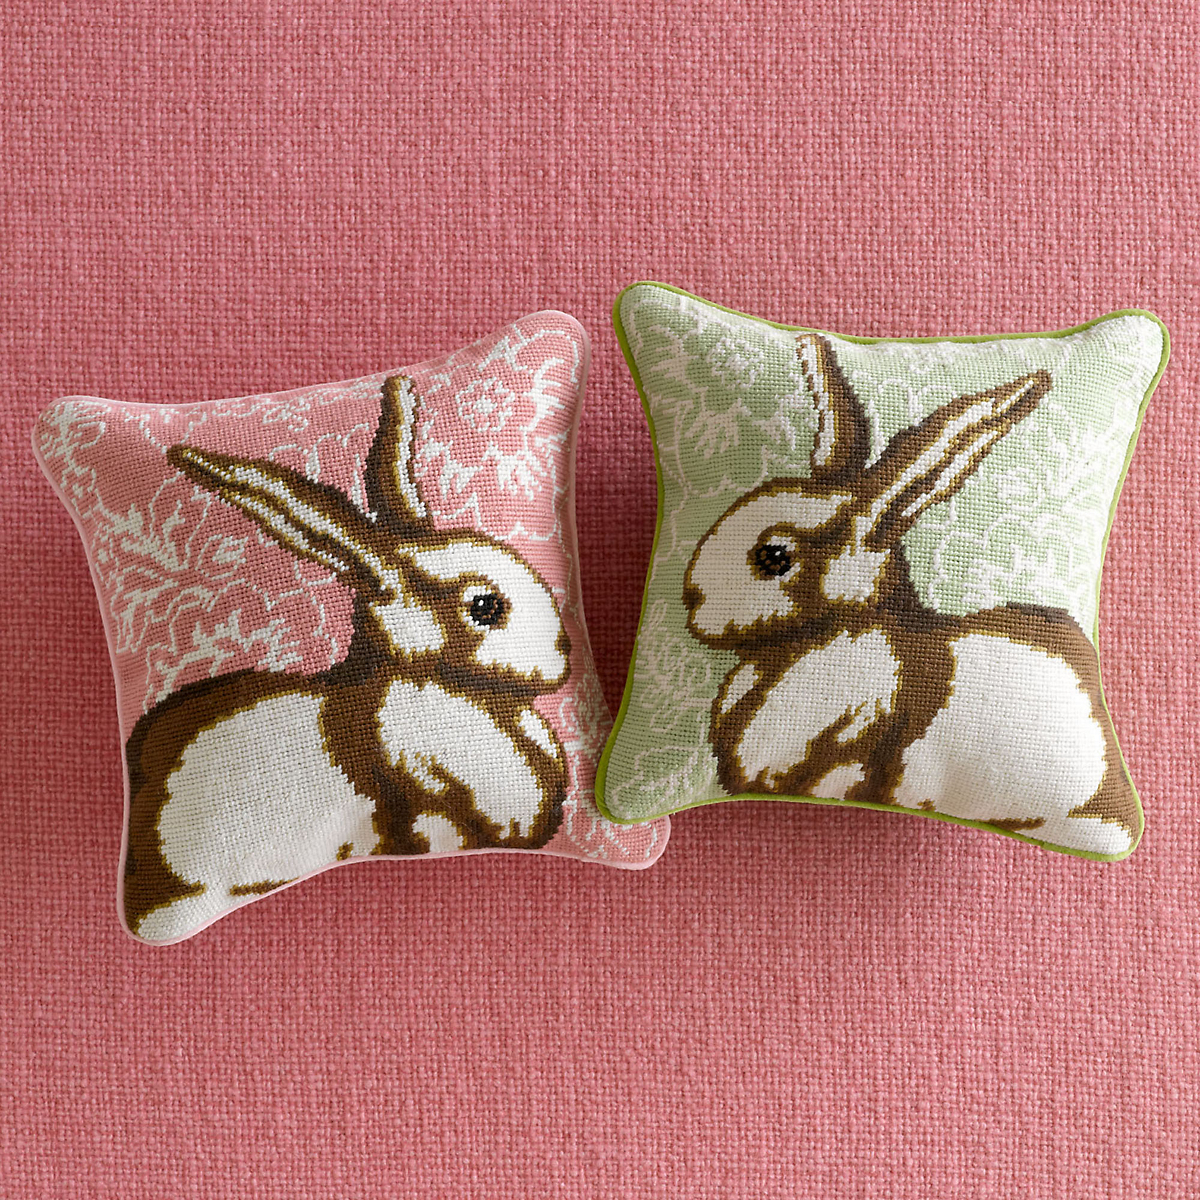 Needlepoint Easter Bunny Pillows